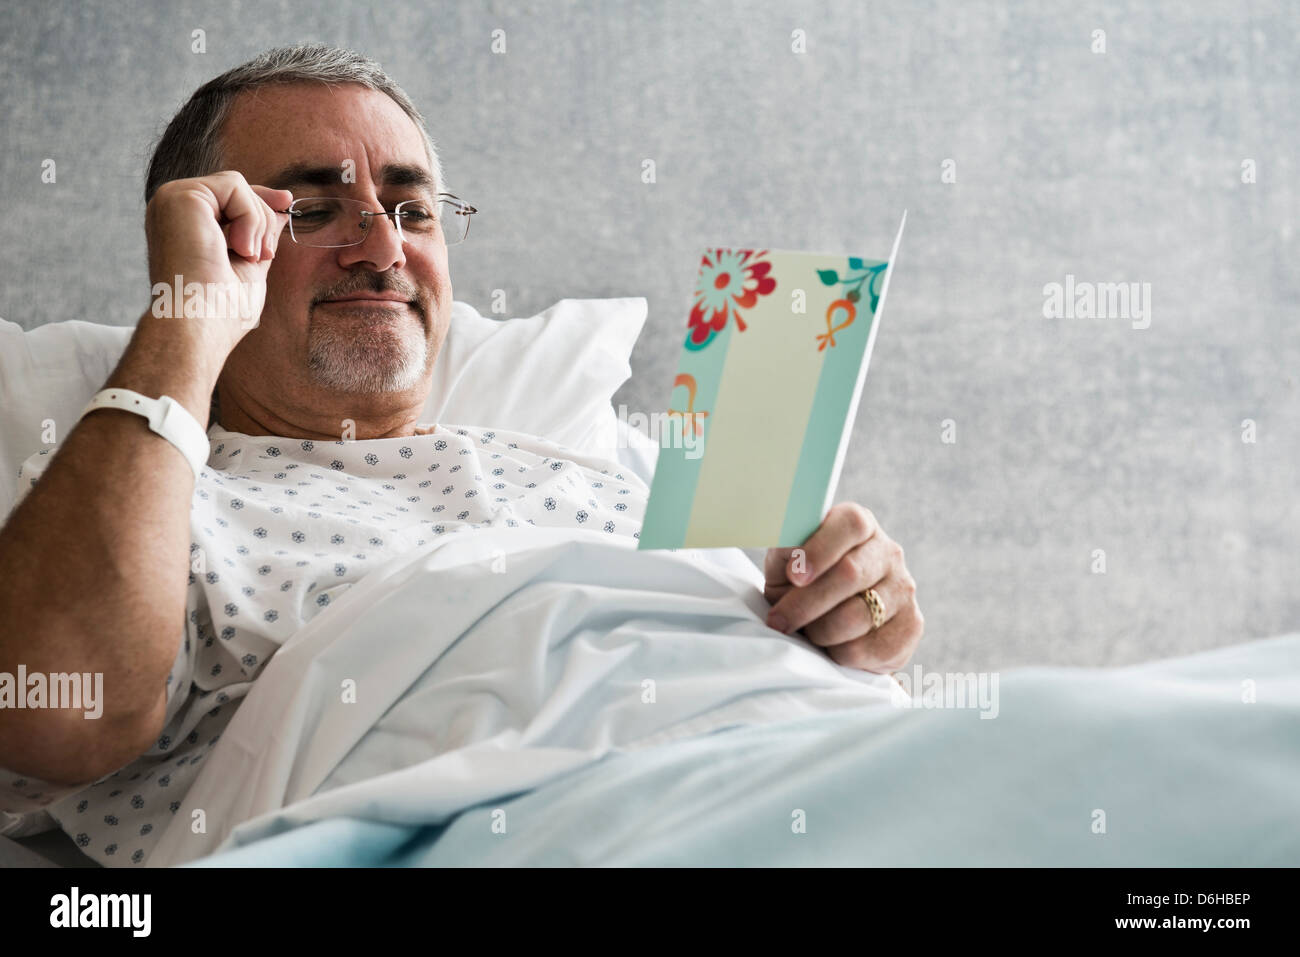 Male hospital patient looking at get well soon card - Stock Image